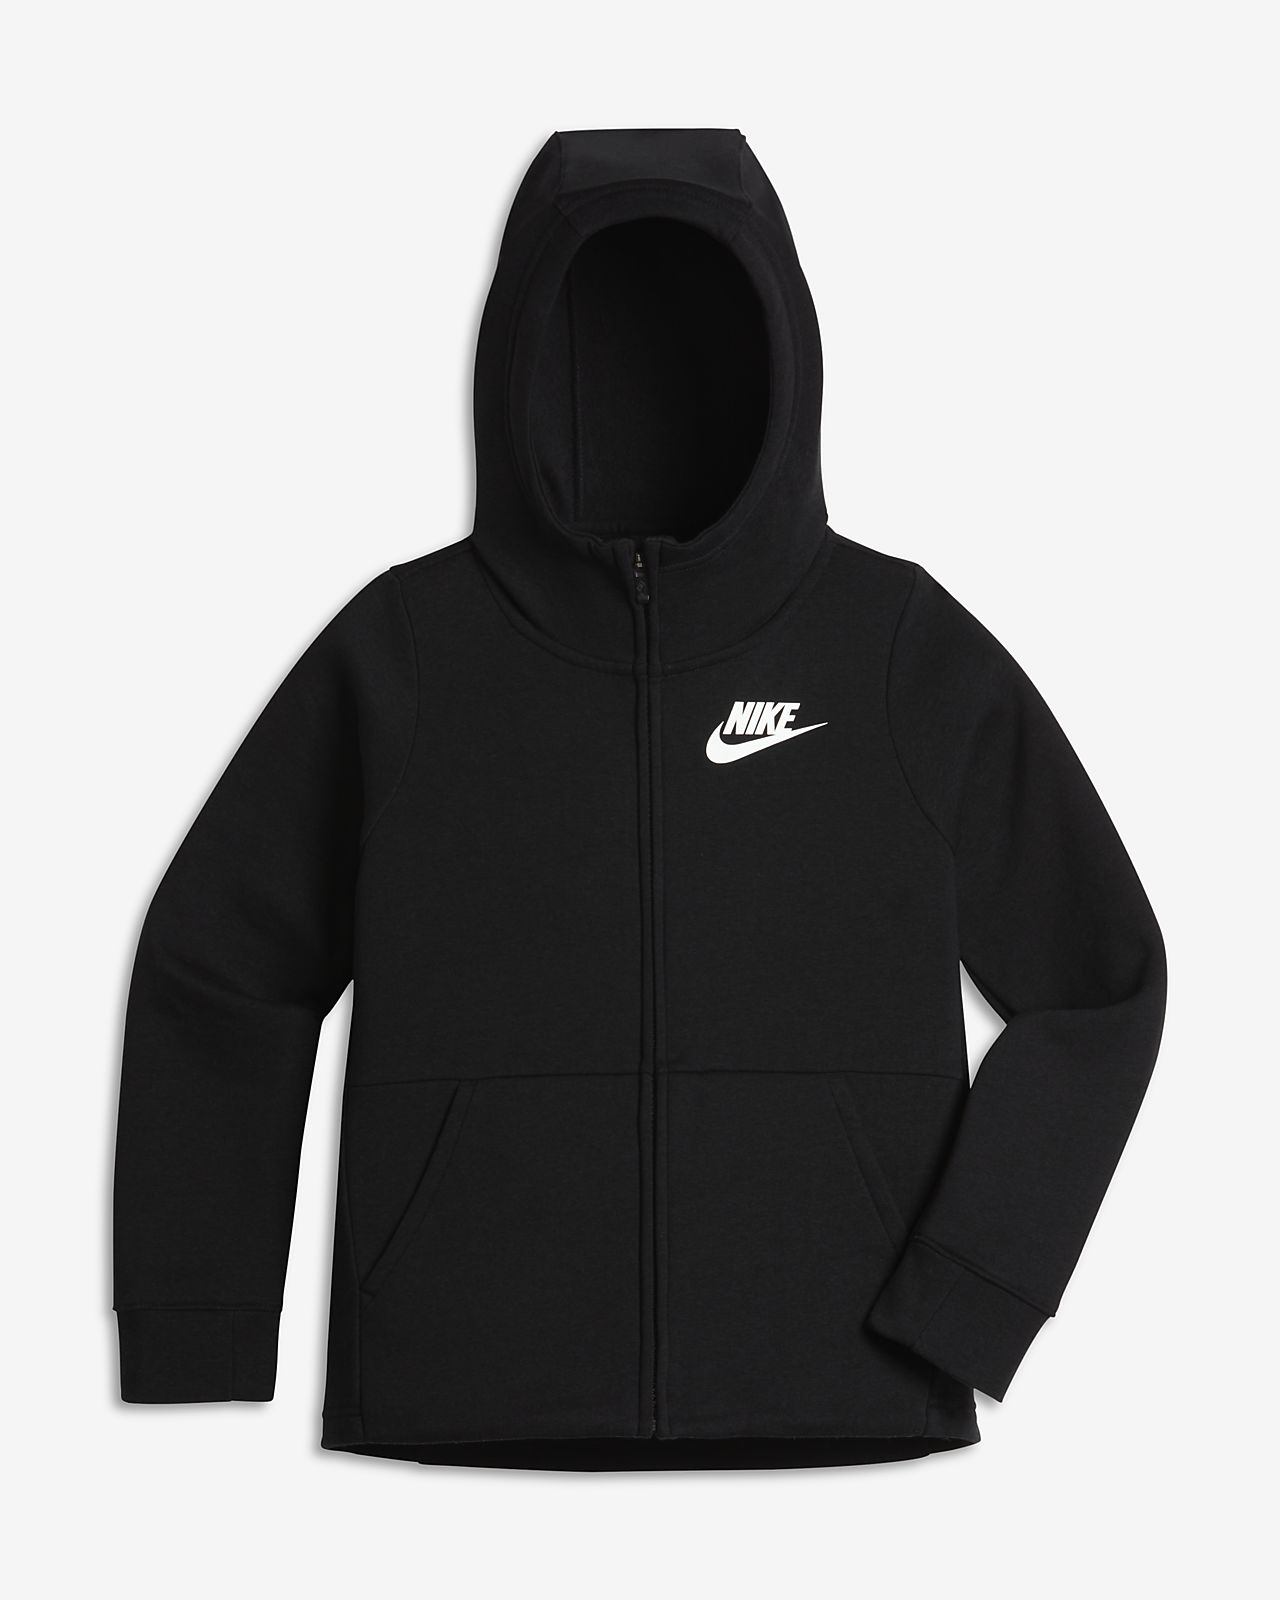 5e9bdd486667 Nike Sportswear Older Kids  (Girls ) Full-Zip Hoodie. Nike.com GB